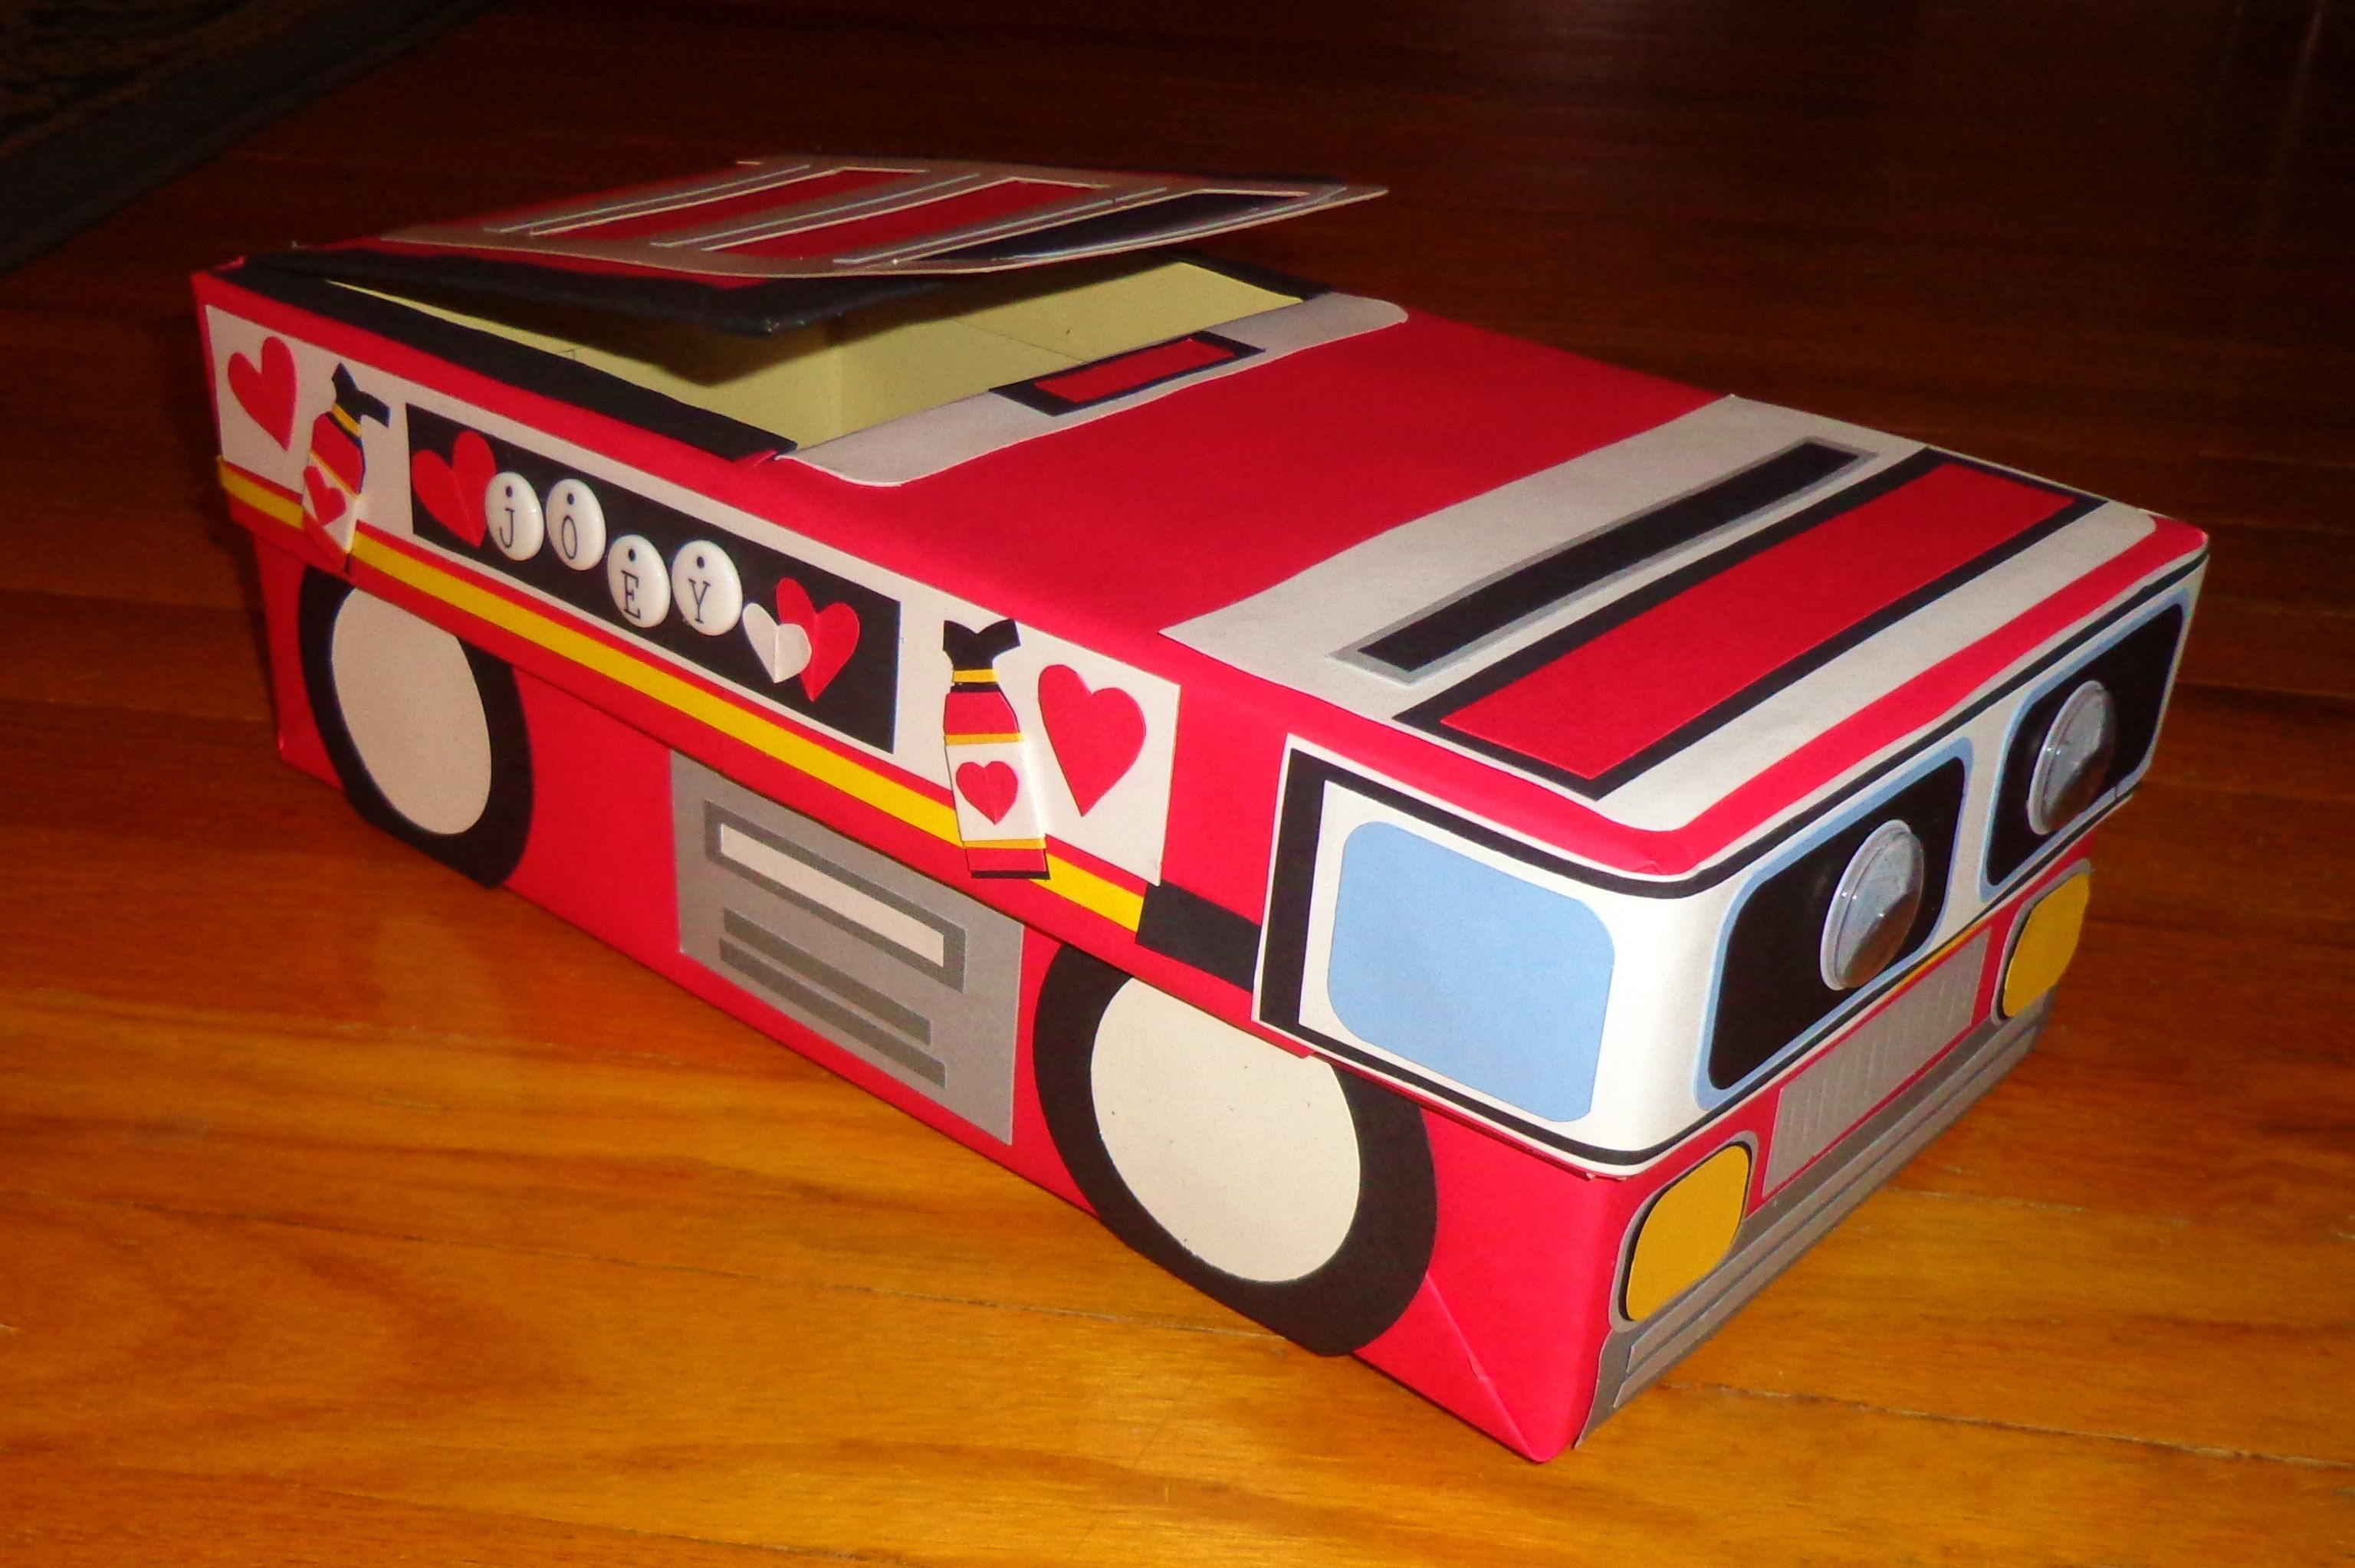 Ideas For Decorating Valentine Box Fire Truck Themed Valentine's Day Card Box  Made With A Shoe Box